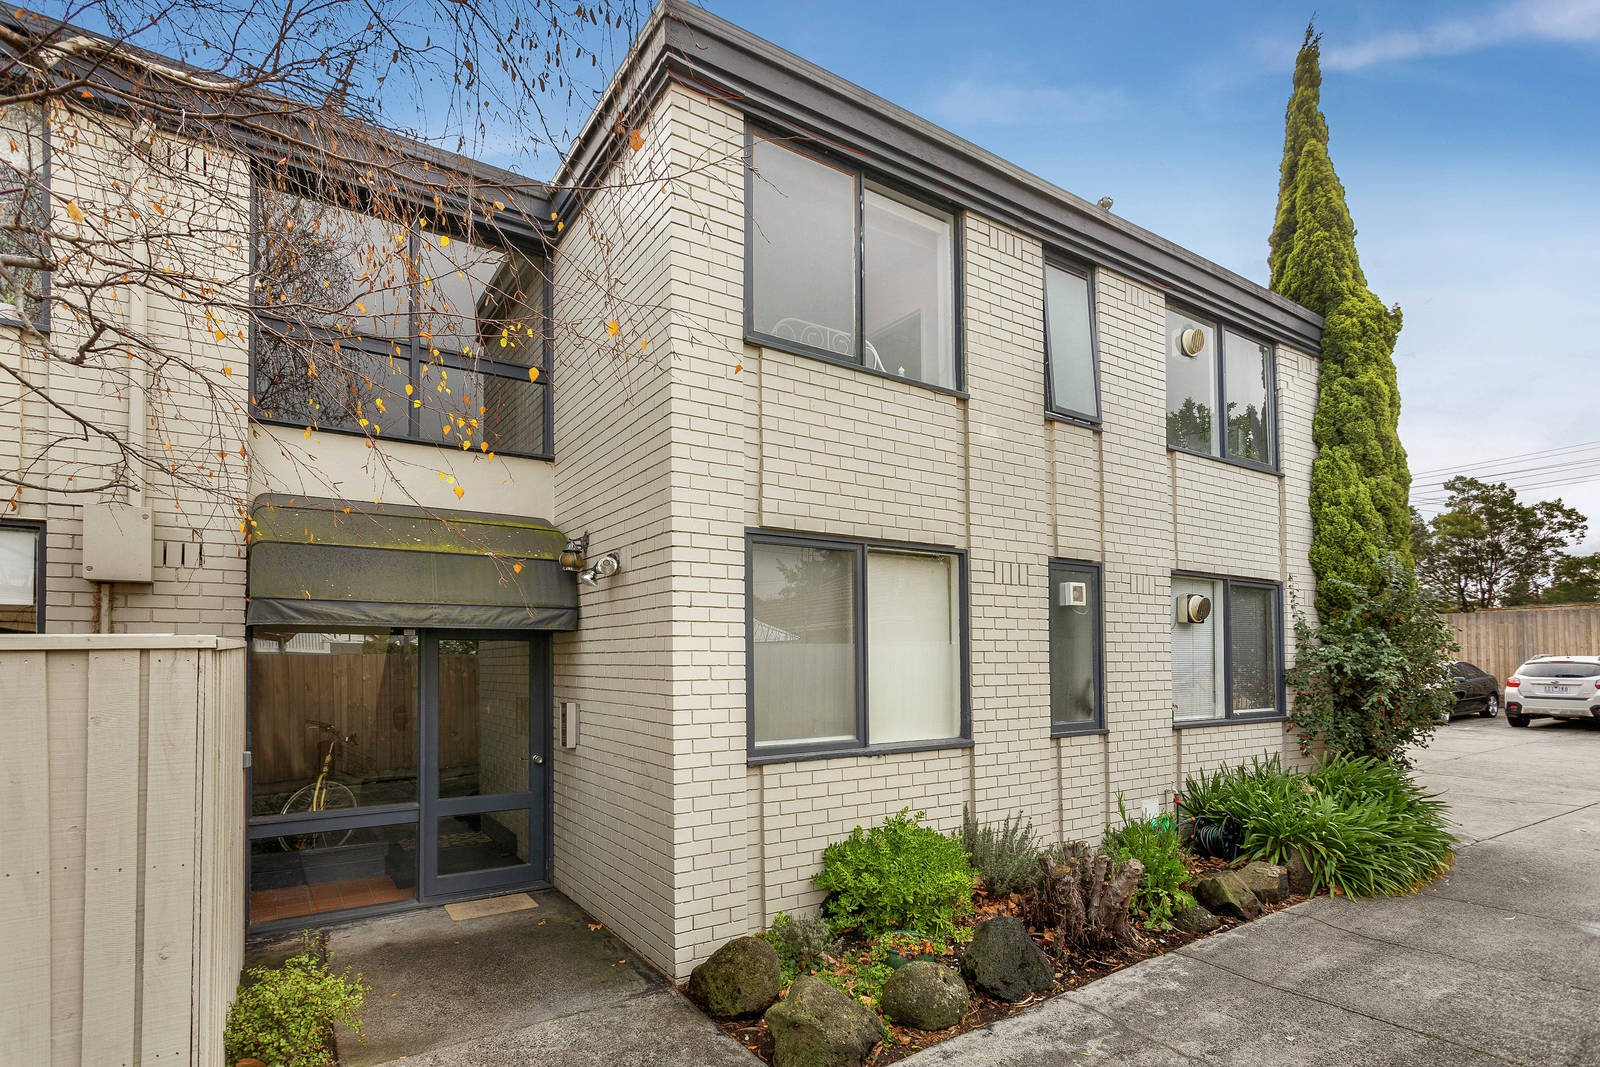 10/51 Cunningham Street, Northcote, VIC, 3070 image 7